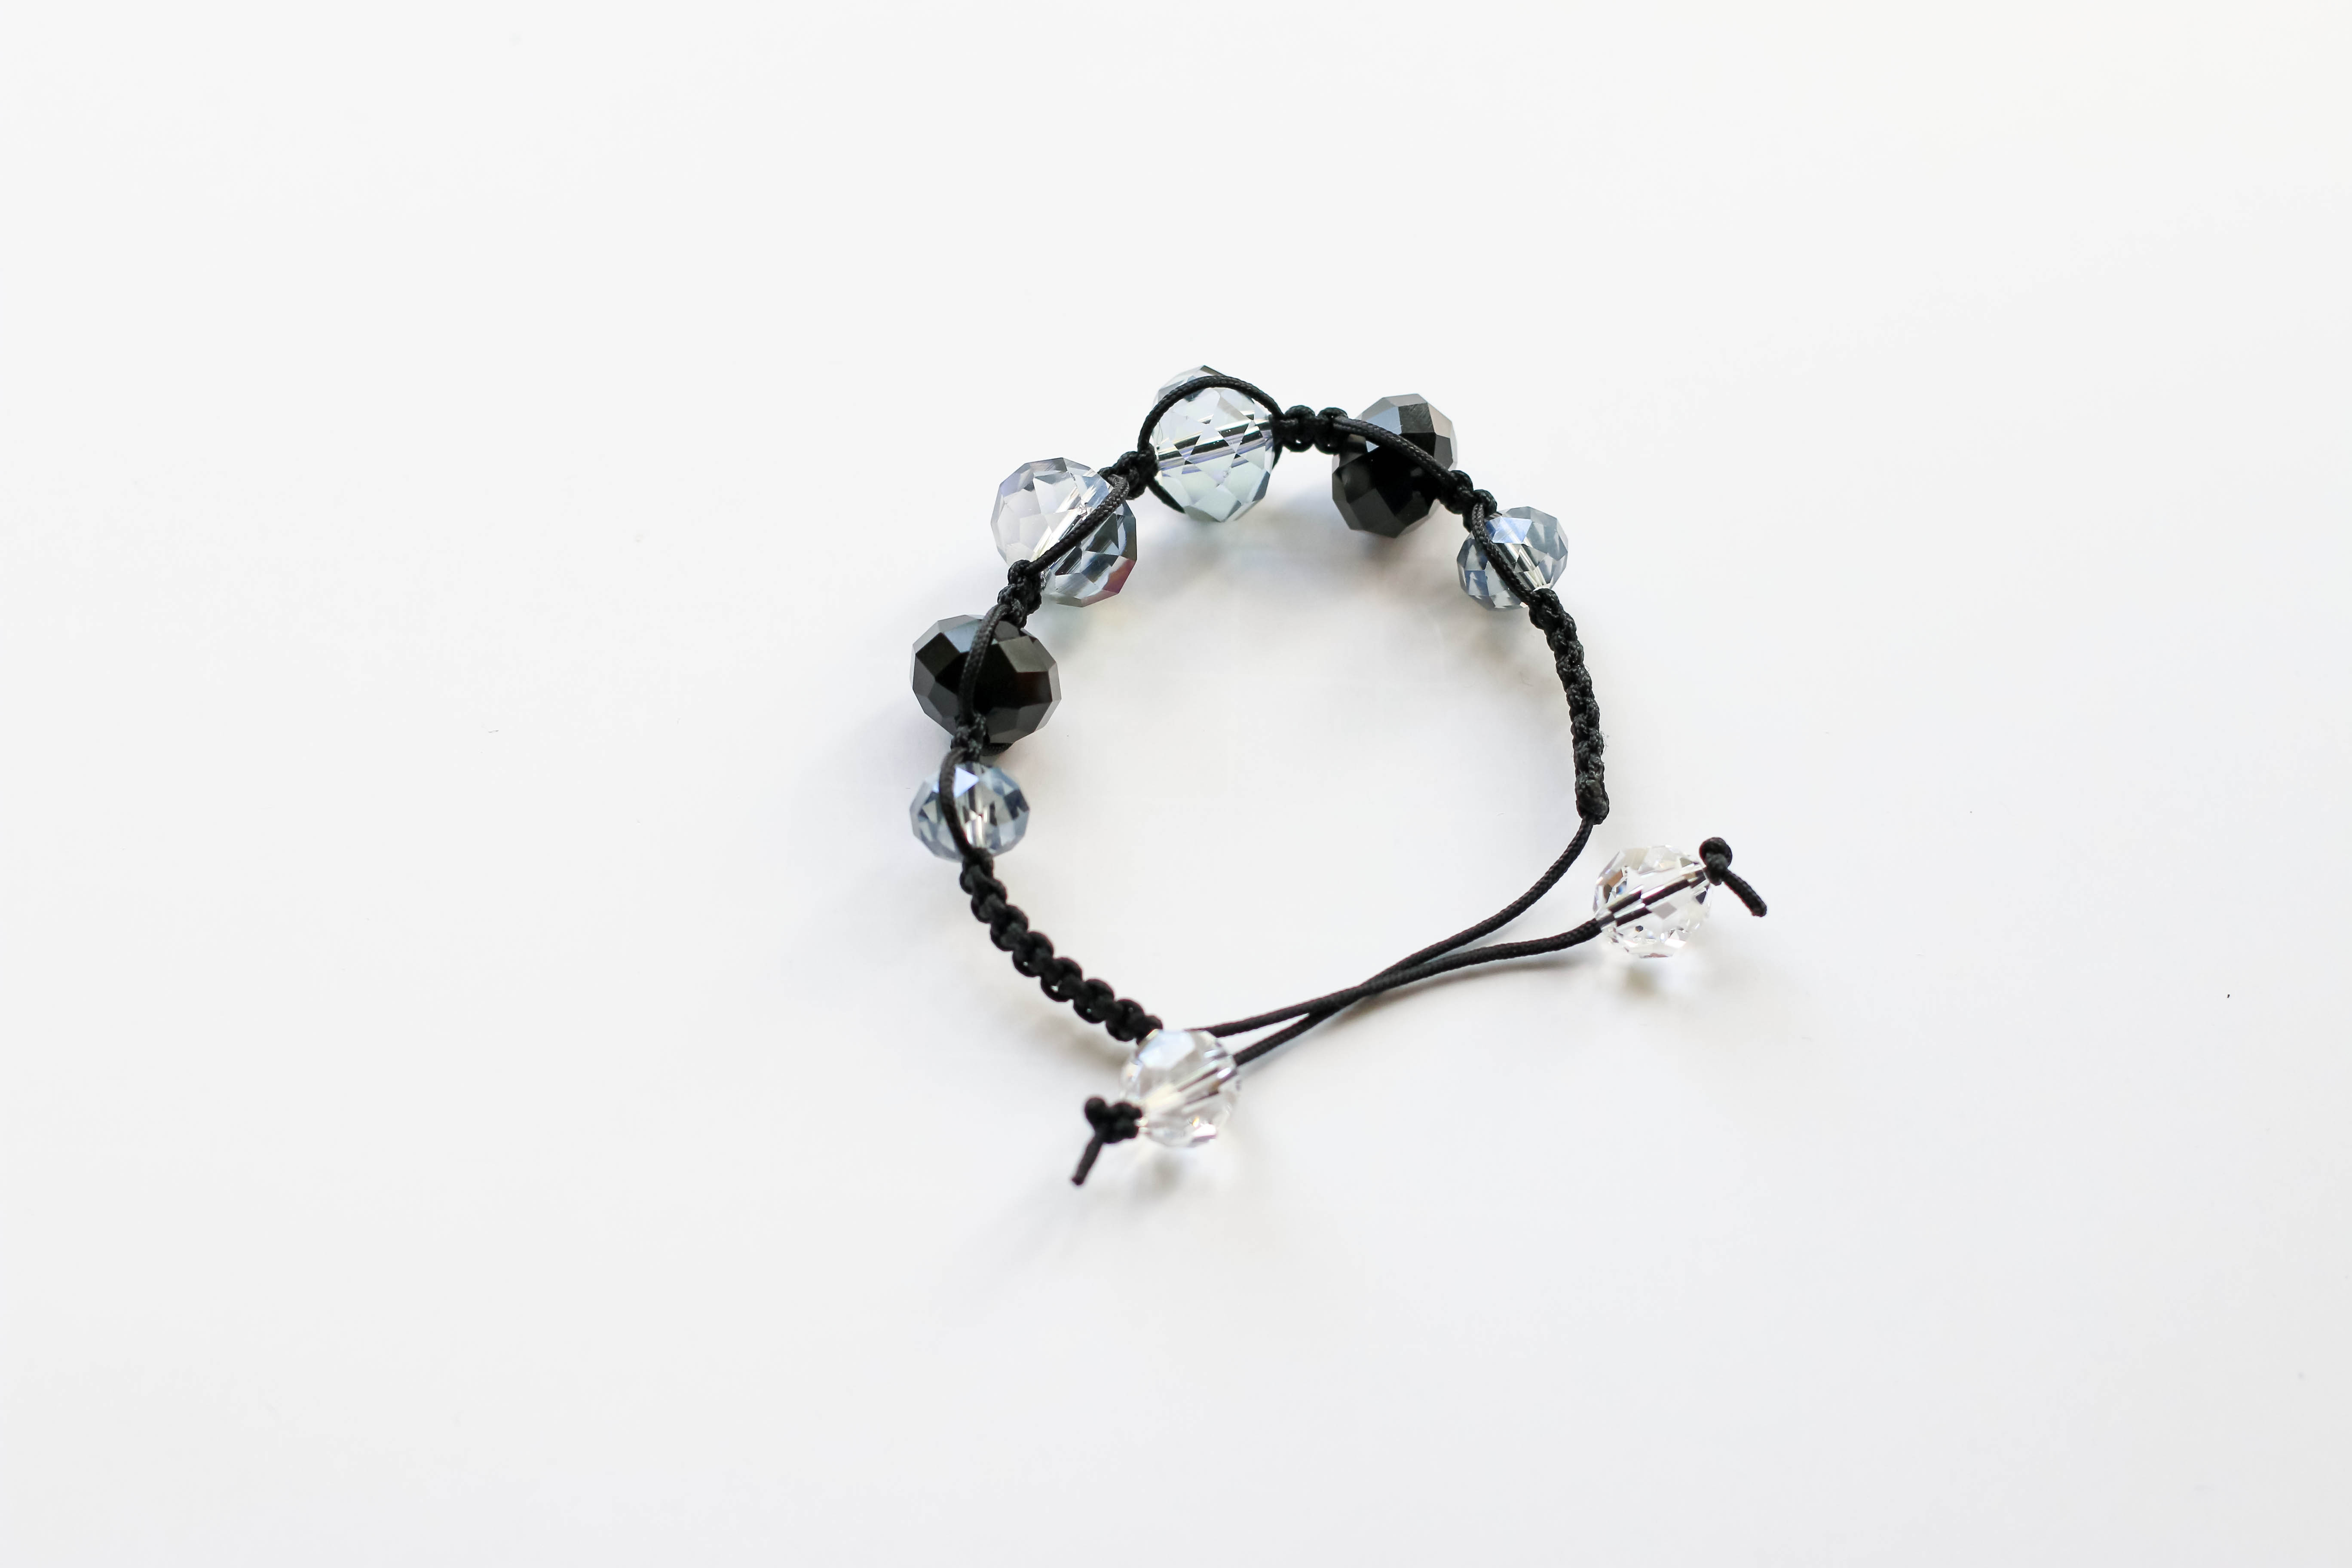 Shamballa bracelet - Bend the work around, overlapping.